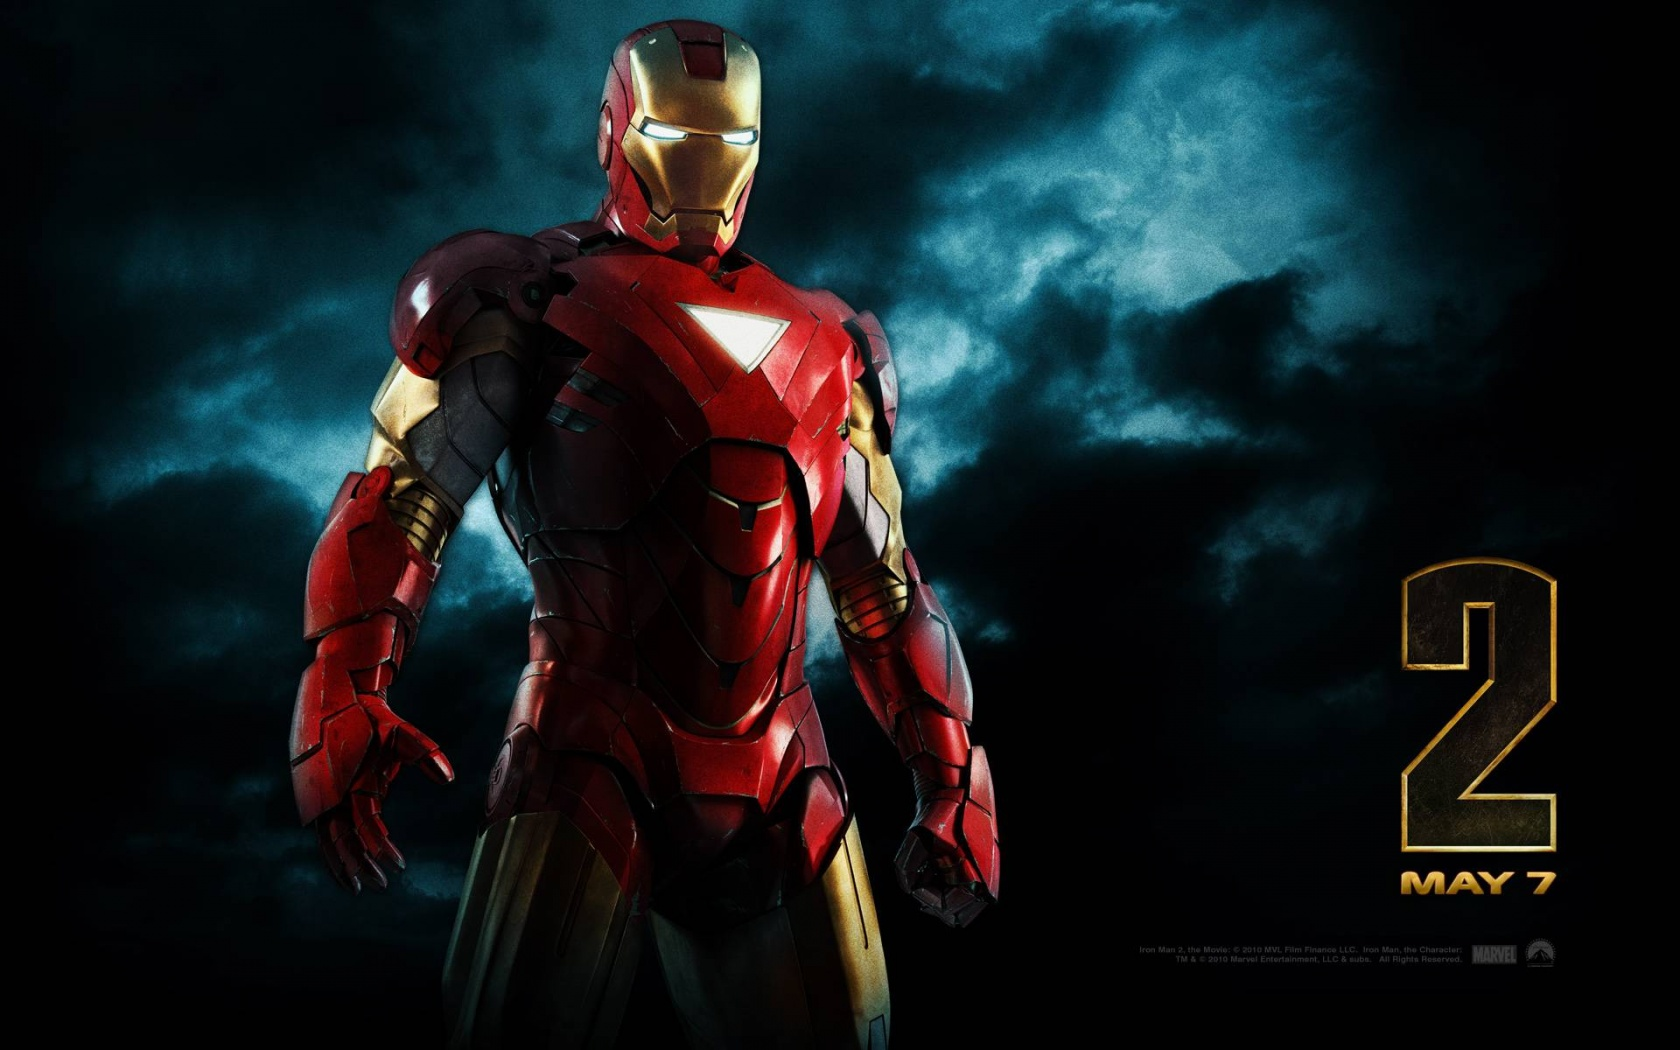 2010 Iron man 2 Wallpapers HD Wallpapers 1680x1050